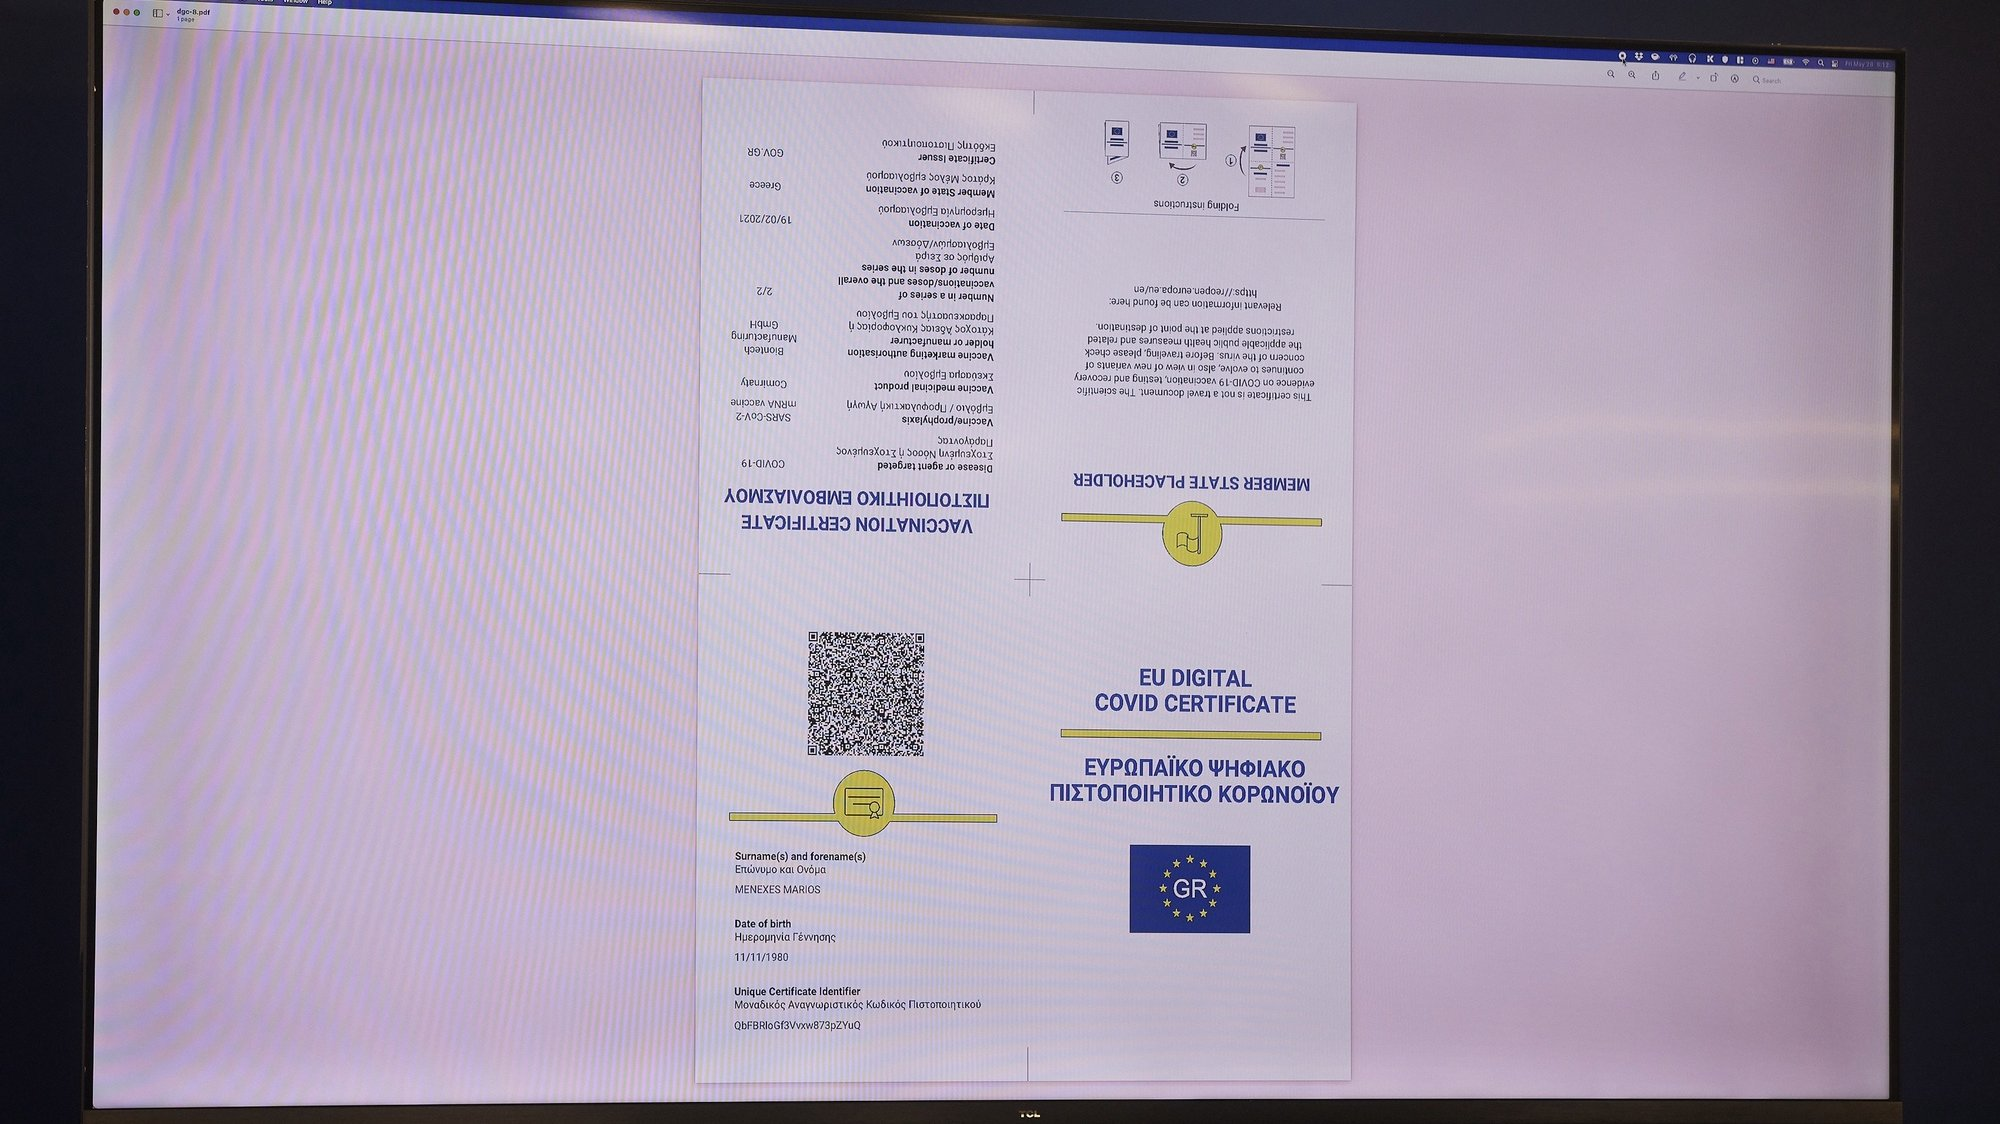 epa09232677 A handout photo made available by the Press Office of the Greek Prime Minister shows a screen displaying the EU Digital COVID Certificate, which will facilitate travelling within the European Union, during its presentation in Athens, Greece, 28 May 2021. 'Greece is ready to activate the digital certificate earlier than 01 July and we encourage other countries to do the same to avoid the complexity of bilateral negotiations', Greek Prime Minister Kyriakos Mitsotakis said while addressing the presentation of the EU Digital Covid Certificate.  EPA/DIMITRIS PAPAMITSOS/GREEK PRIME MINISTER'S PRESS OFFICE HANDOUT  HANDOUT EDITORIAL USE ONLY/NO SALES